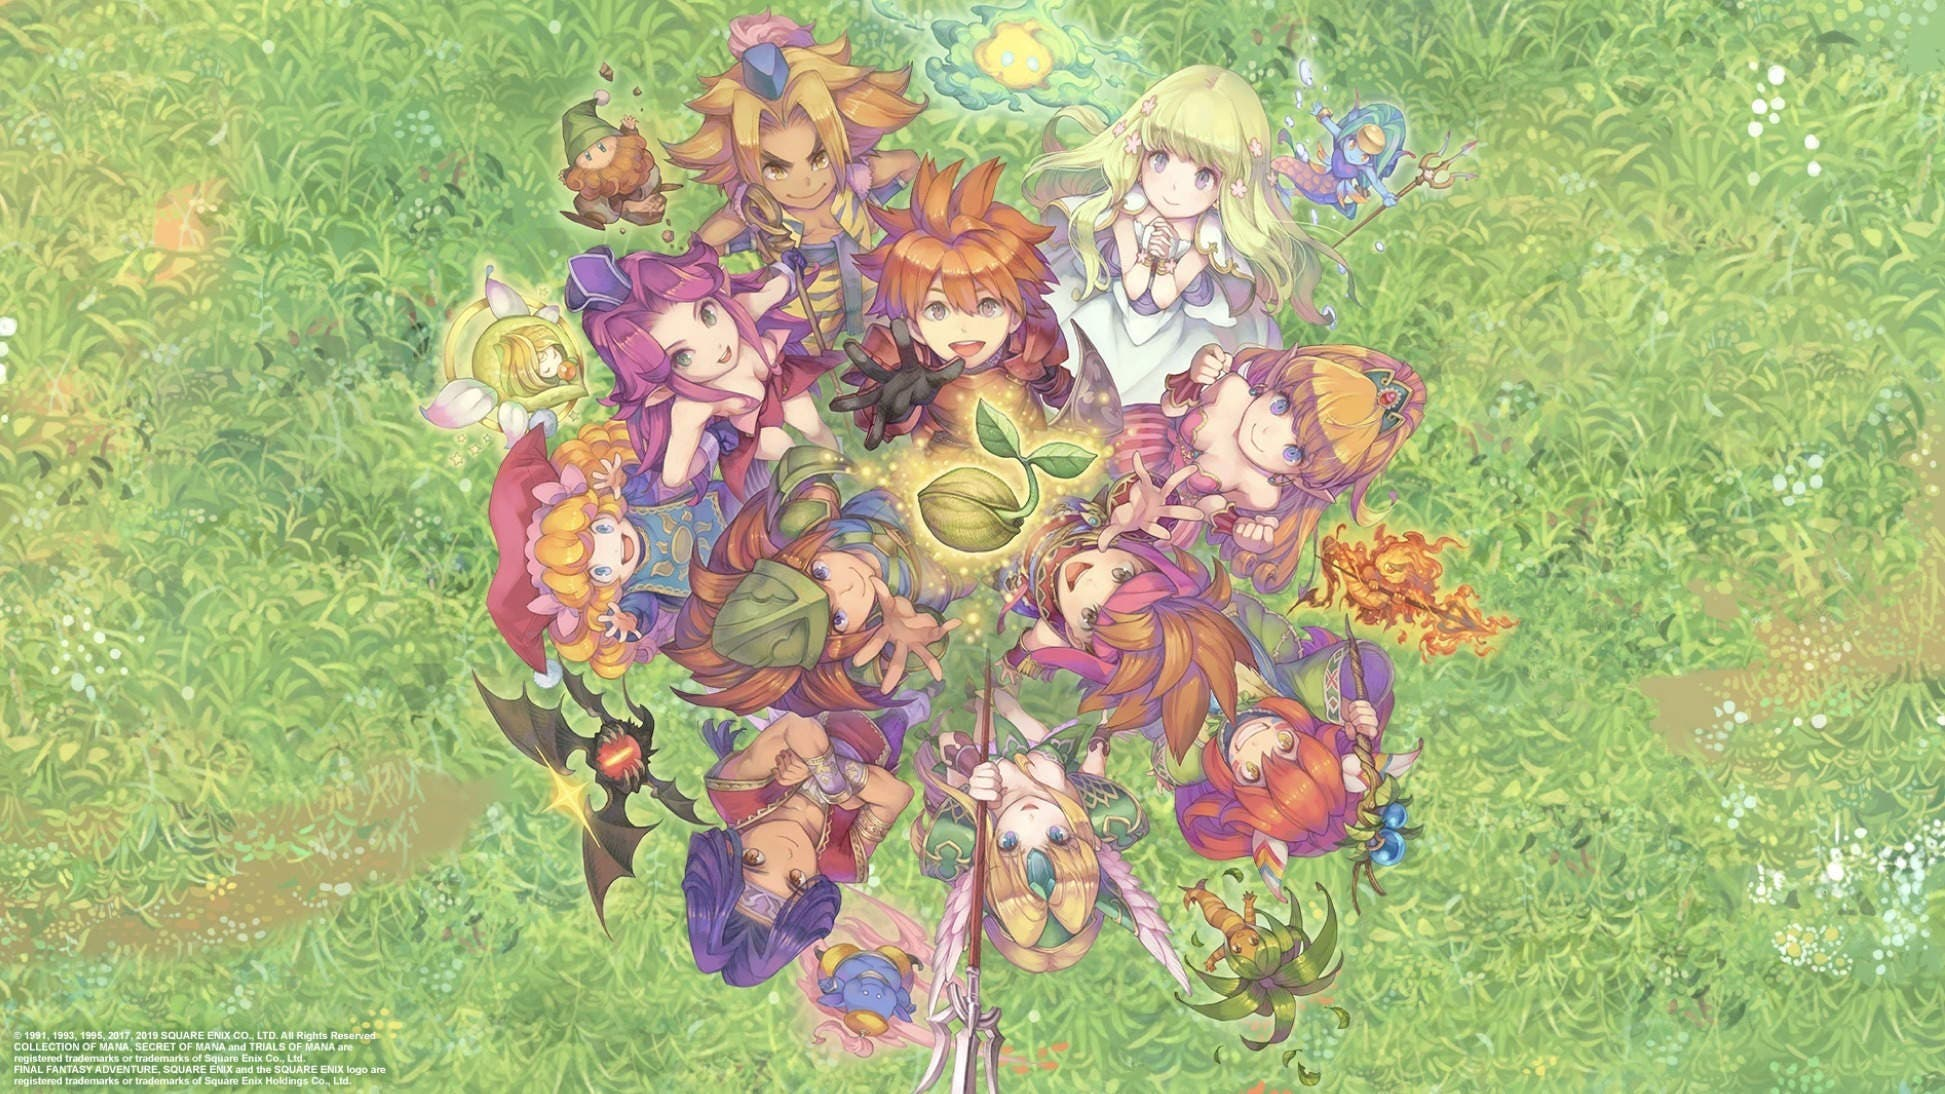 Imagen de Collection of Mana llegará finalmente en formato físico a Nintendo Switch en agosto